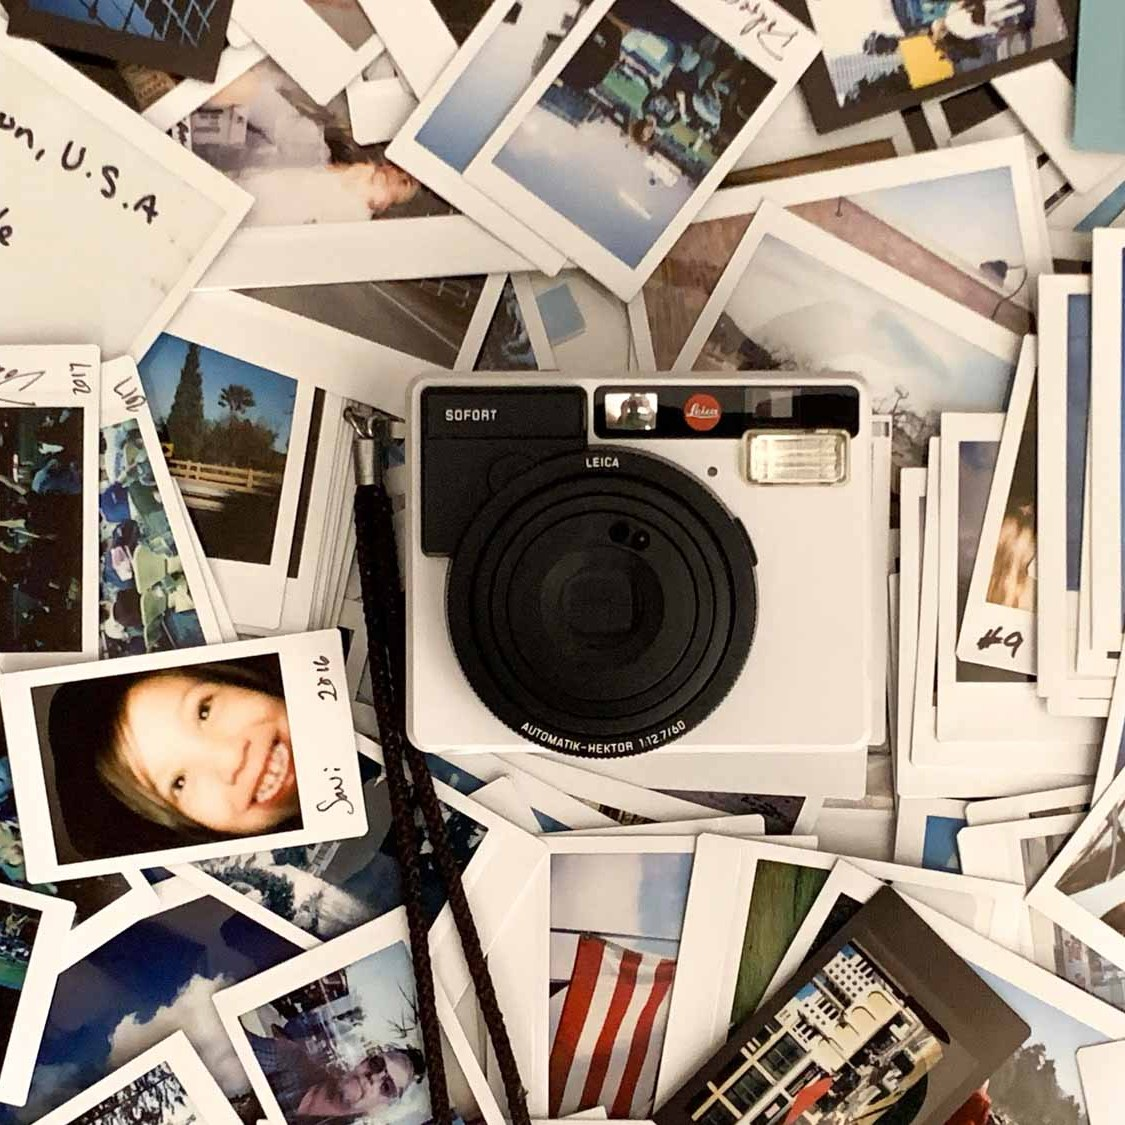 Instax - Leica Sofort